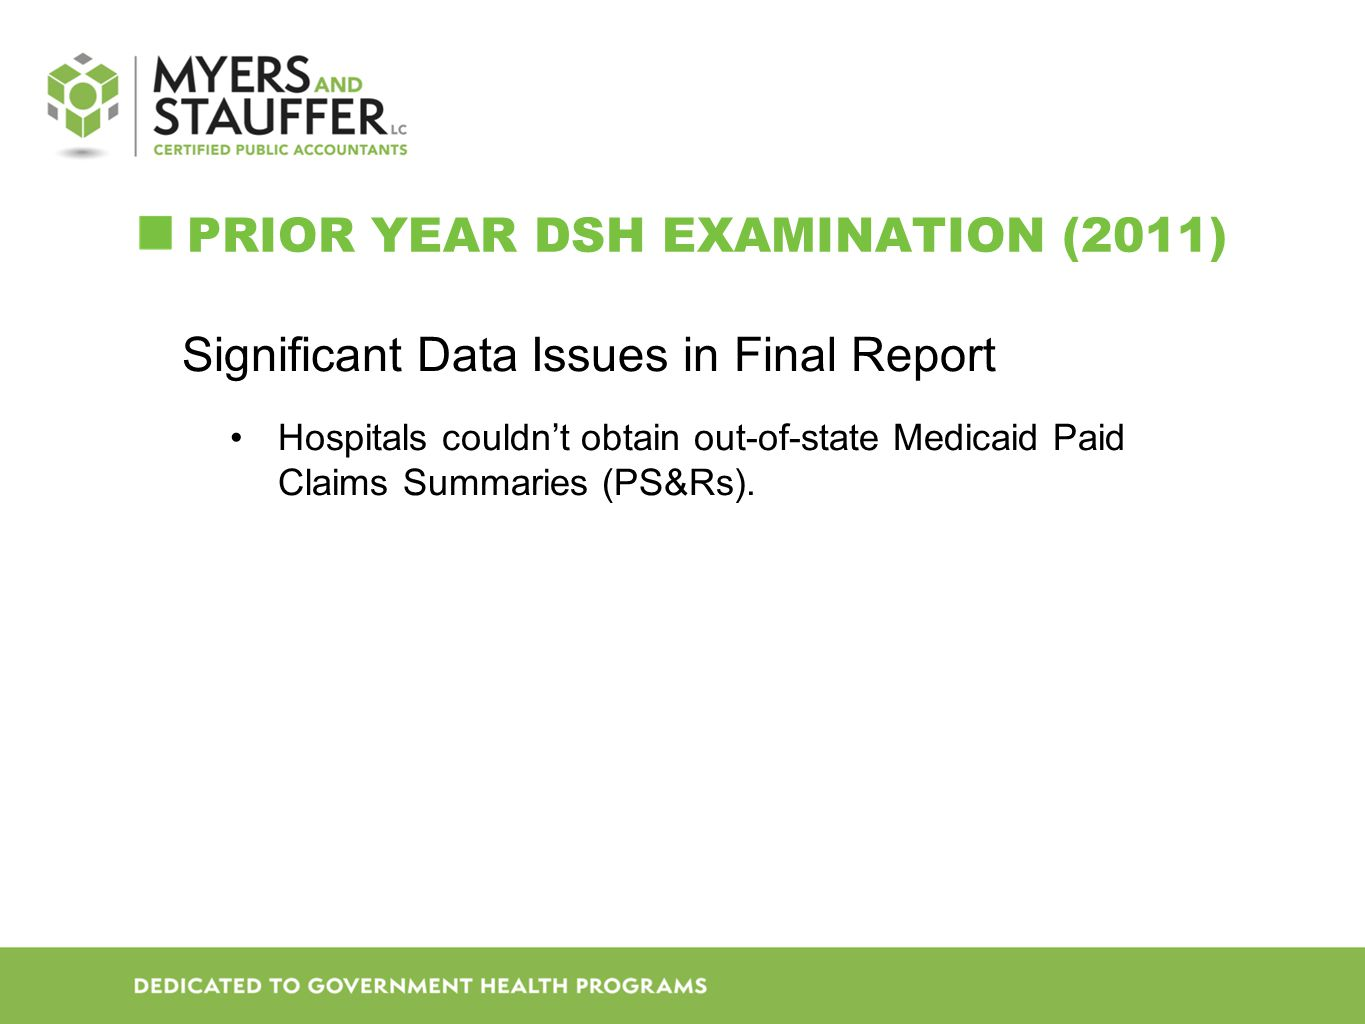 PRIOR YEAR DSH EXAMINATION (2011) Significant Data Issues in Final Report Hospitals couldn't obtain out-of-state Medicaid Paid Claims Summaries (PS&Rs).